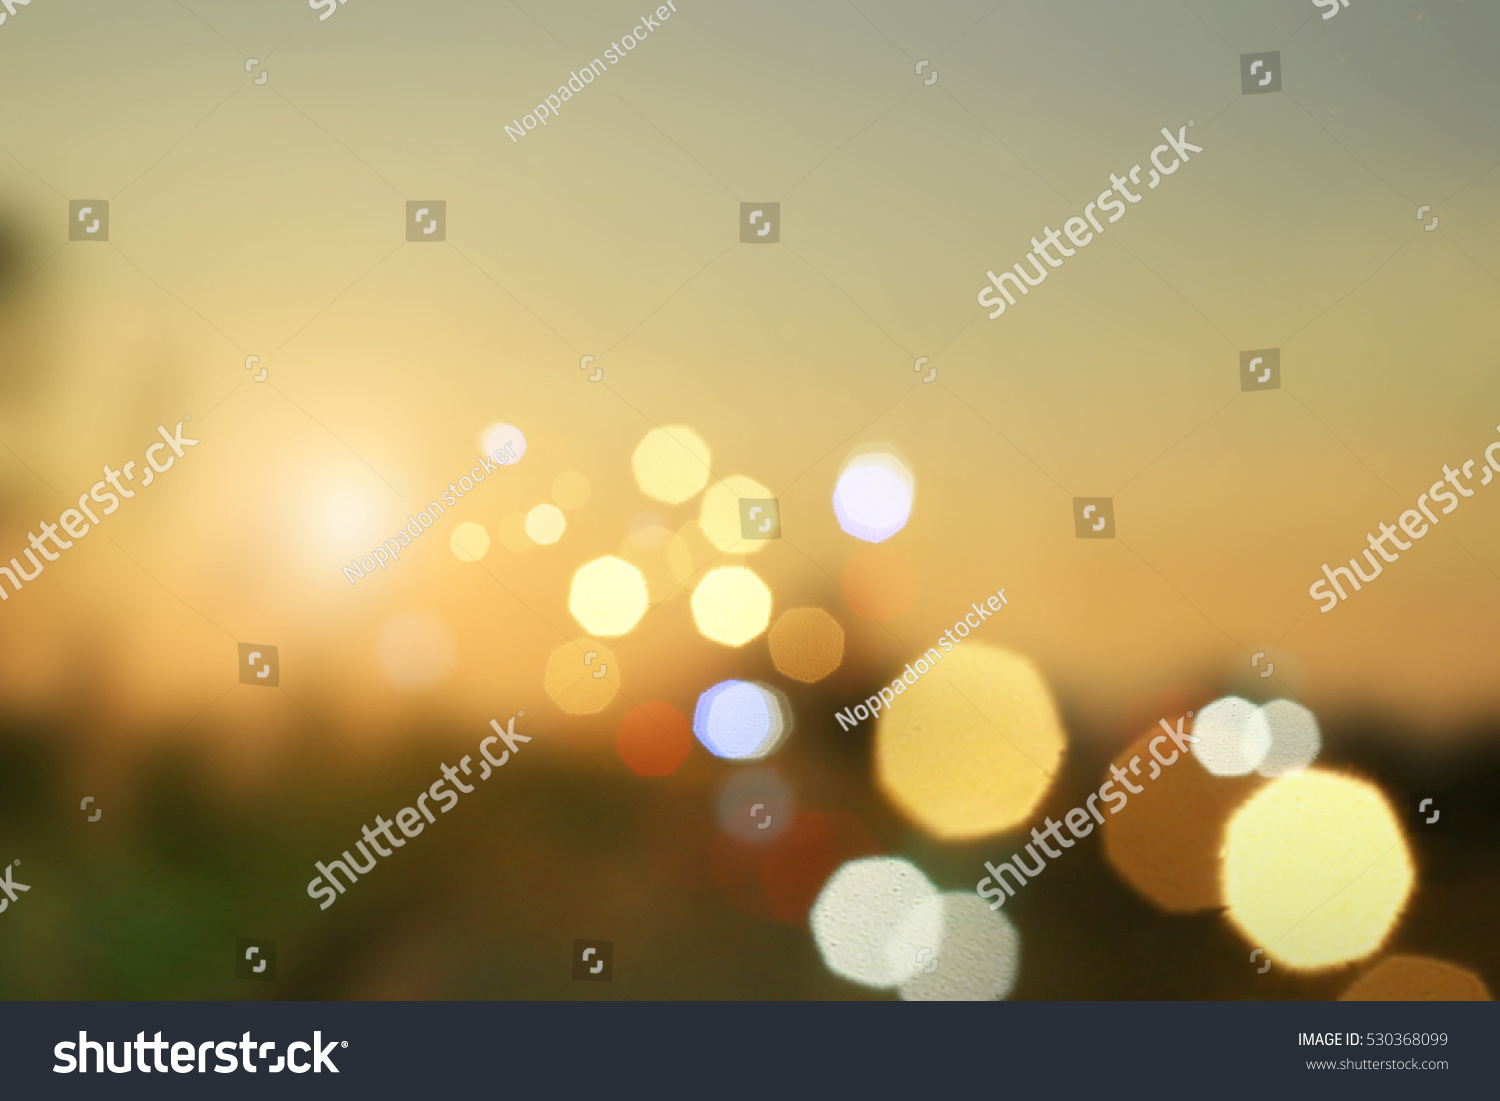 Download Wallpaper Mountain Blurry - stock-photo-blurred-background-sunset-landscape-with-bokeh-sun-light-abstract-background-blur-concept-retro-530368099  Picture_40483.jpg